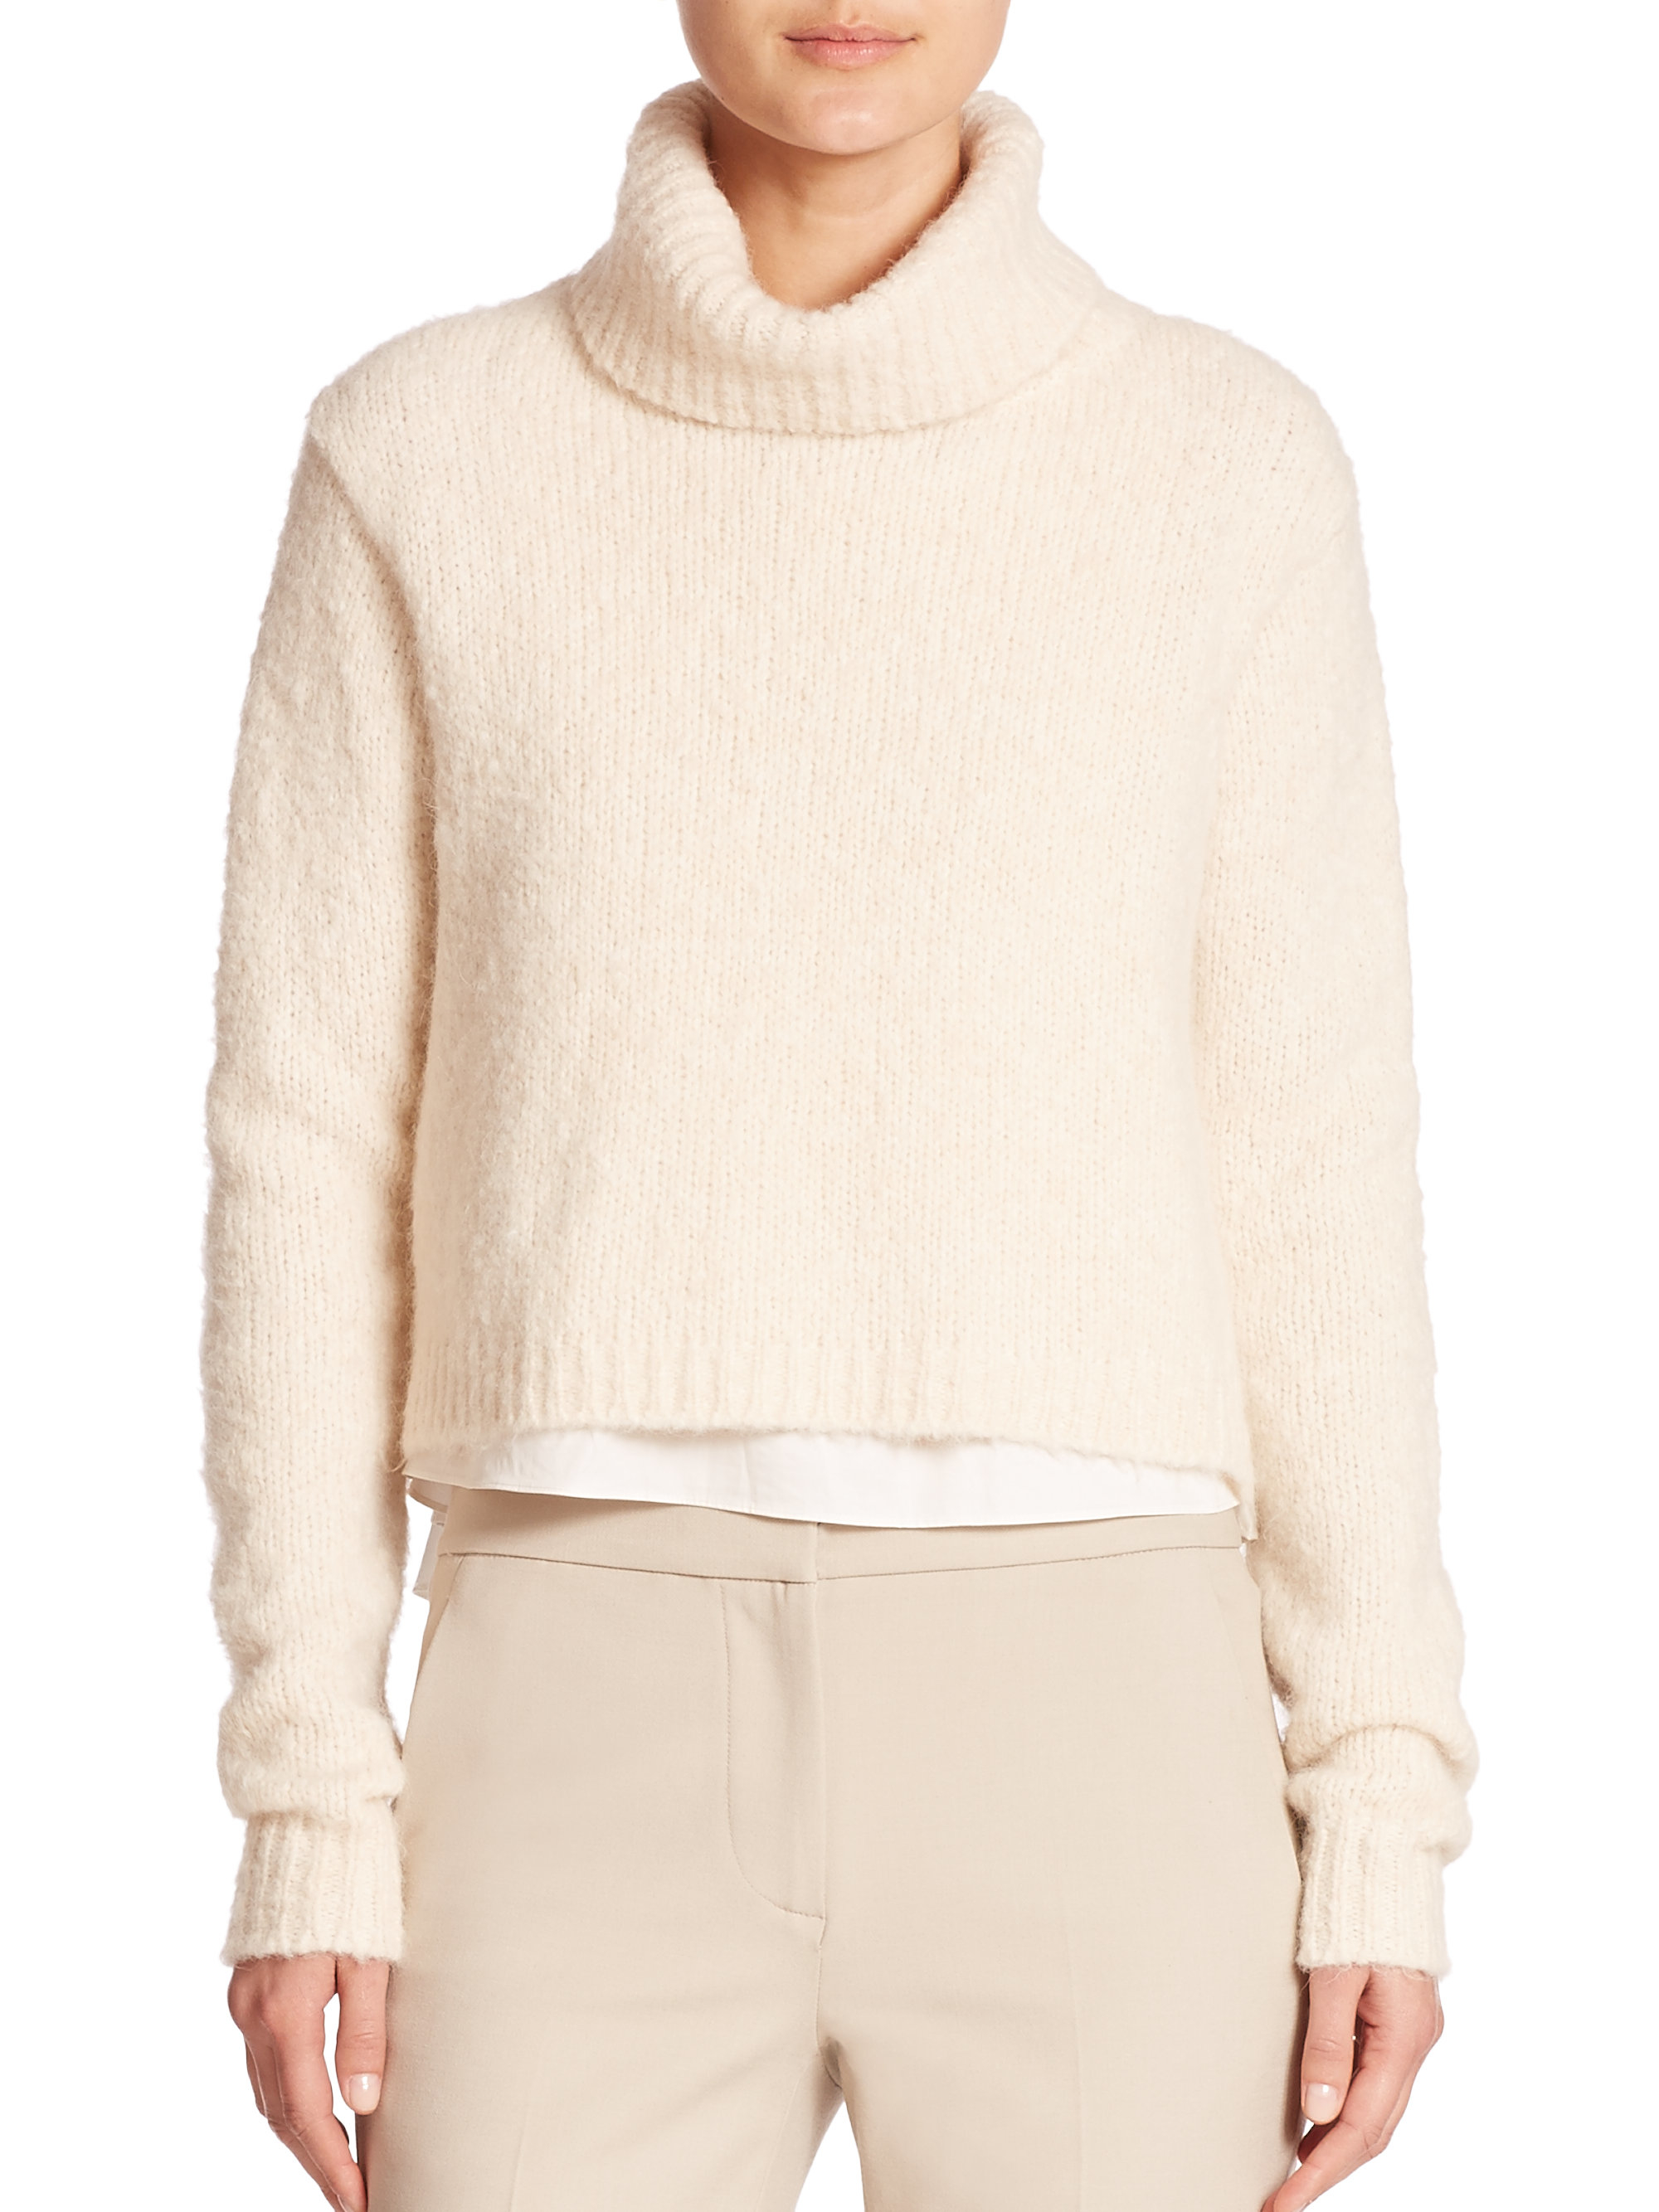 Tibi Merino Wool & Cotton Layered Cropped Sweater in White | Lyst